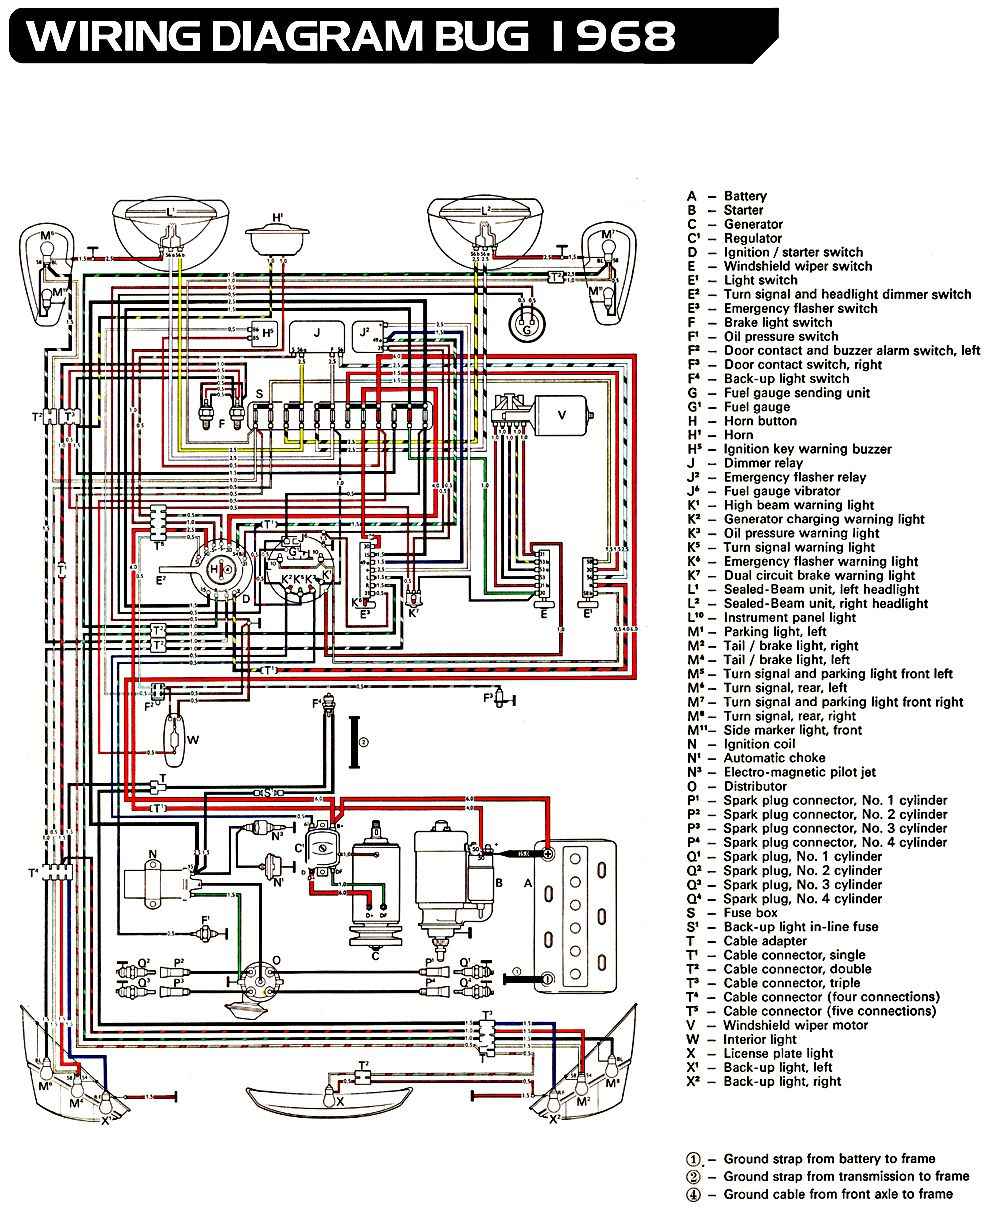 68 vw bug fuse diagram wiring diagram vw bug ignition wiring diagram 73 vw wiring diagram [ 996 x 1211 Pixel ]